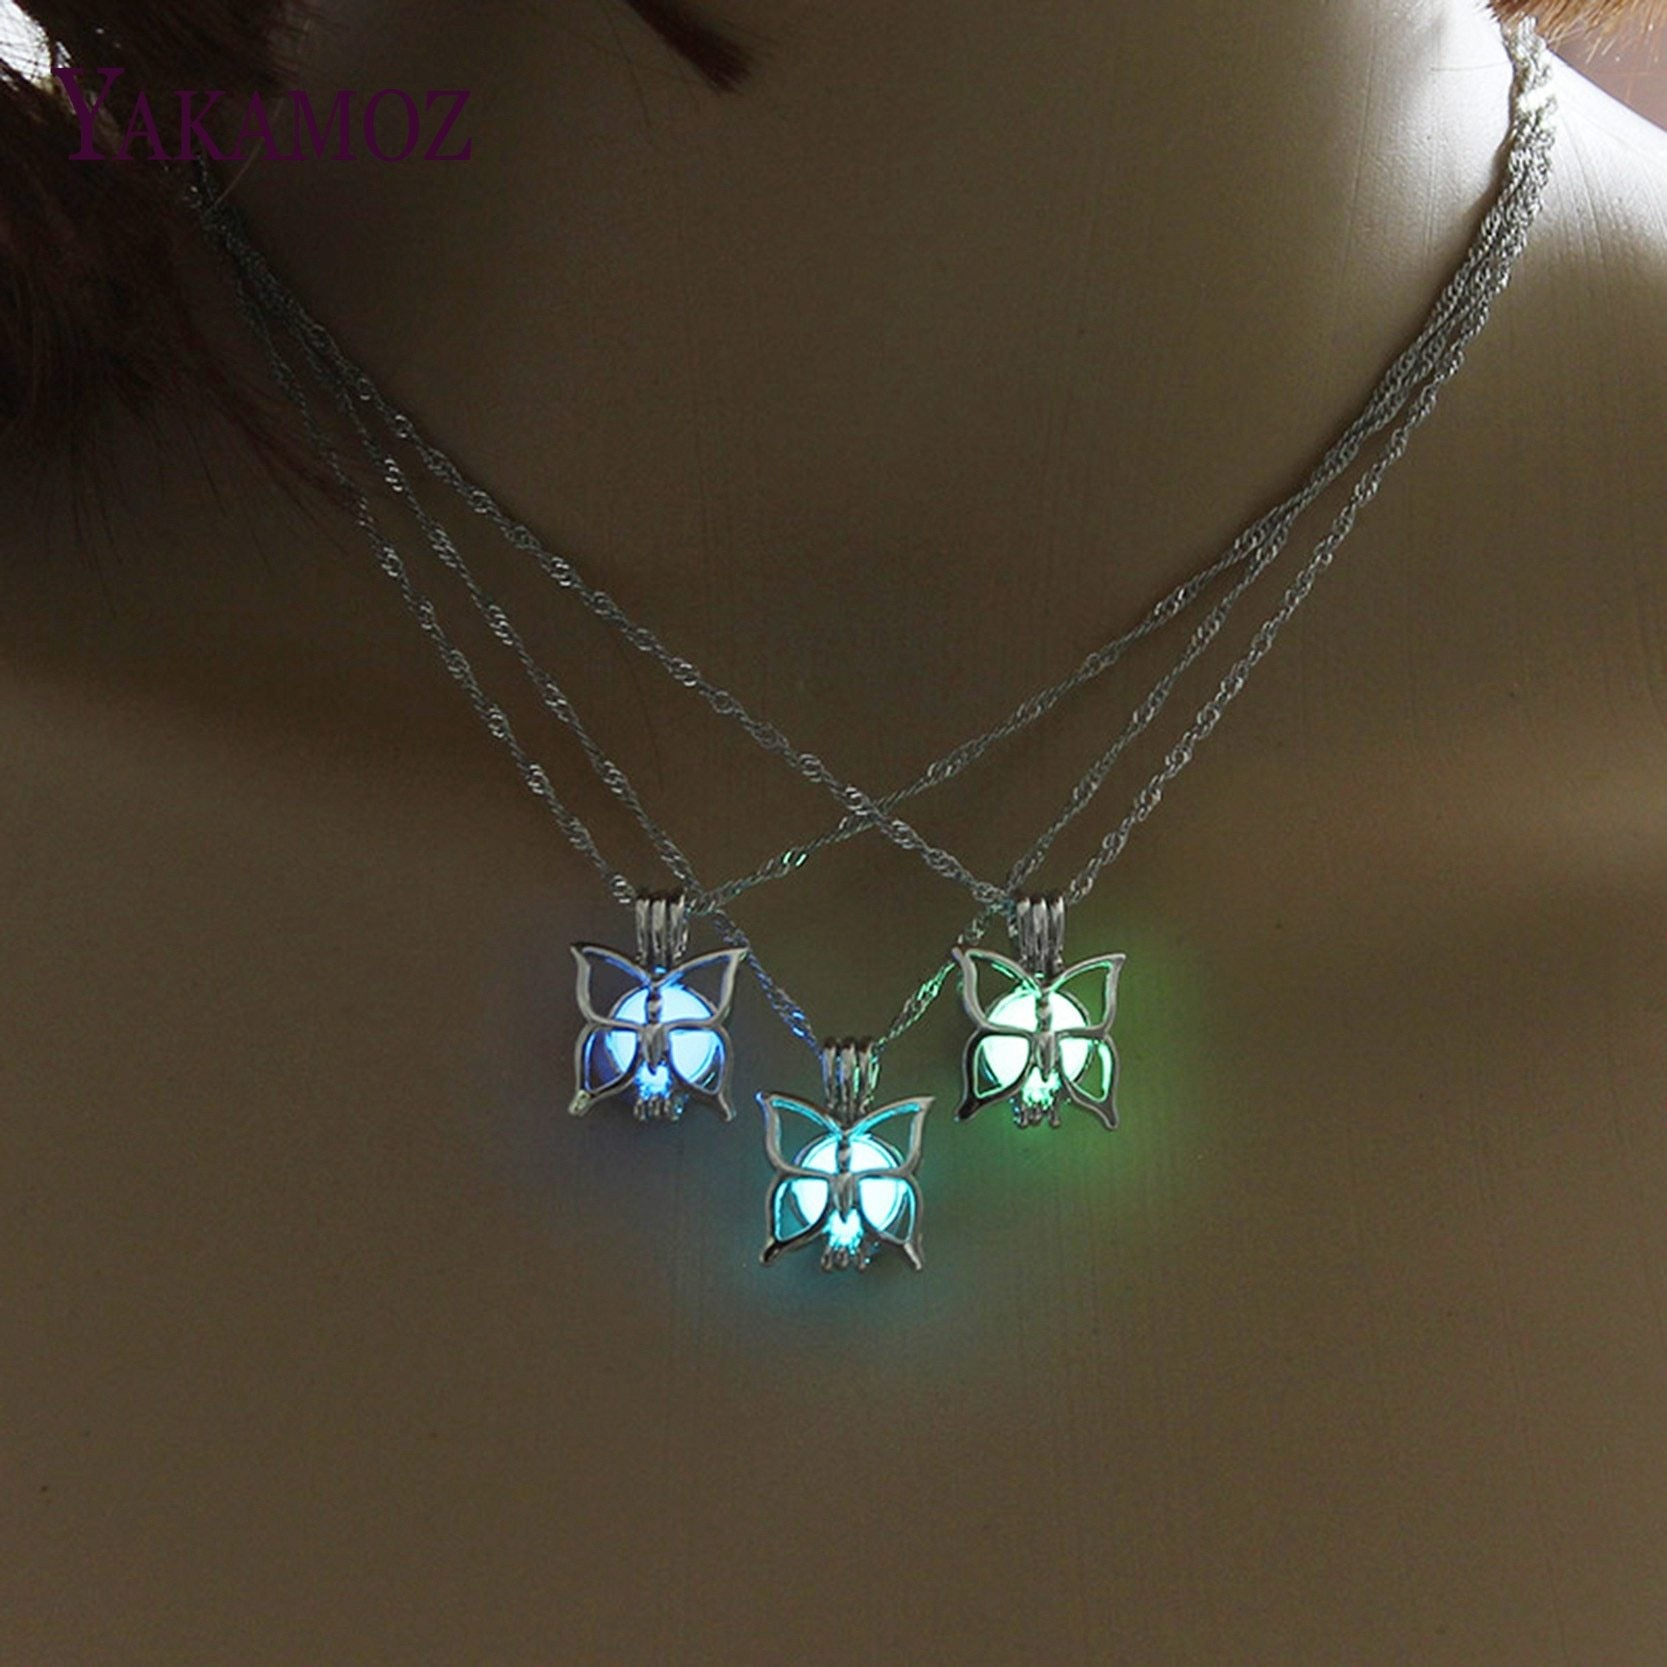 Cutest Butterfly Necklace Glow in the Dark 3 Colors Luminous Jewelry Charmintothea-intothea